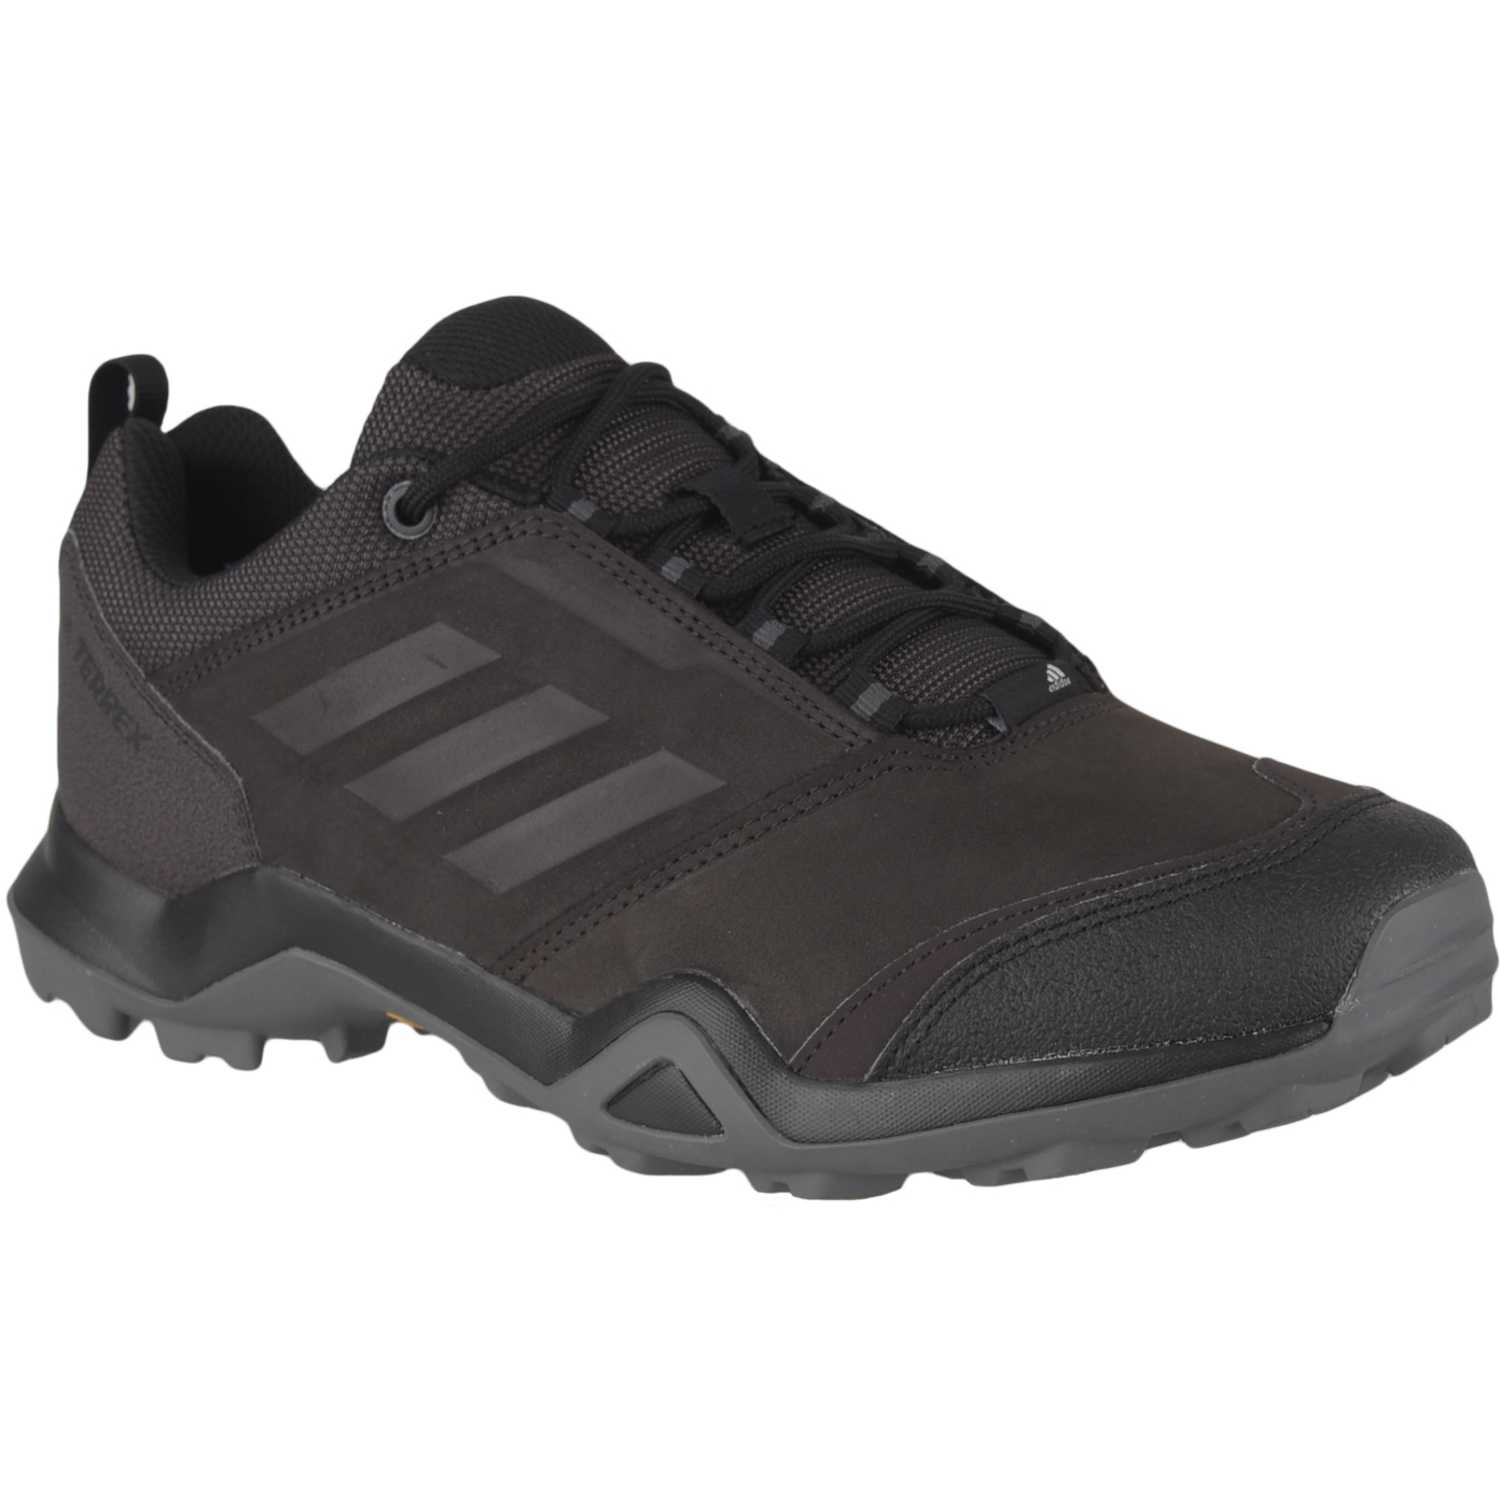 Adidas Terrex Brushwood Leather Negro Zapatos de senderismo